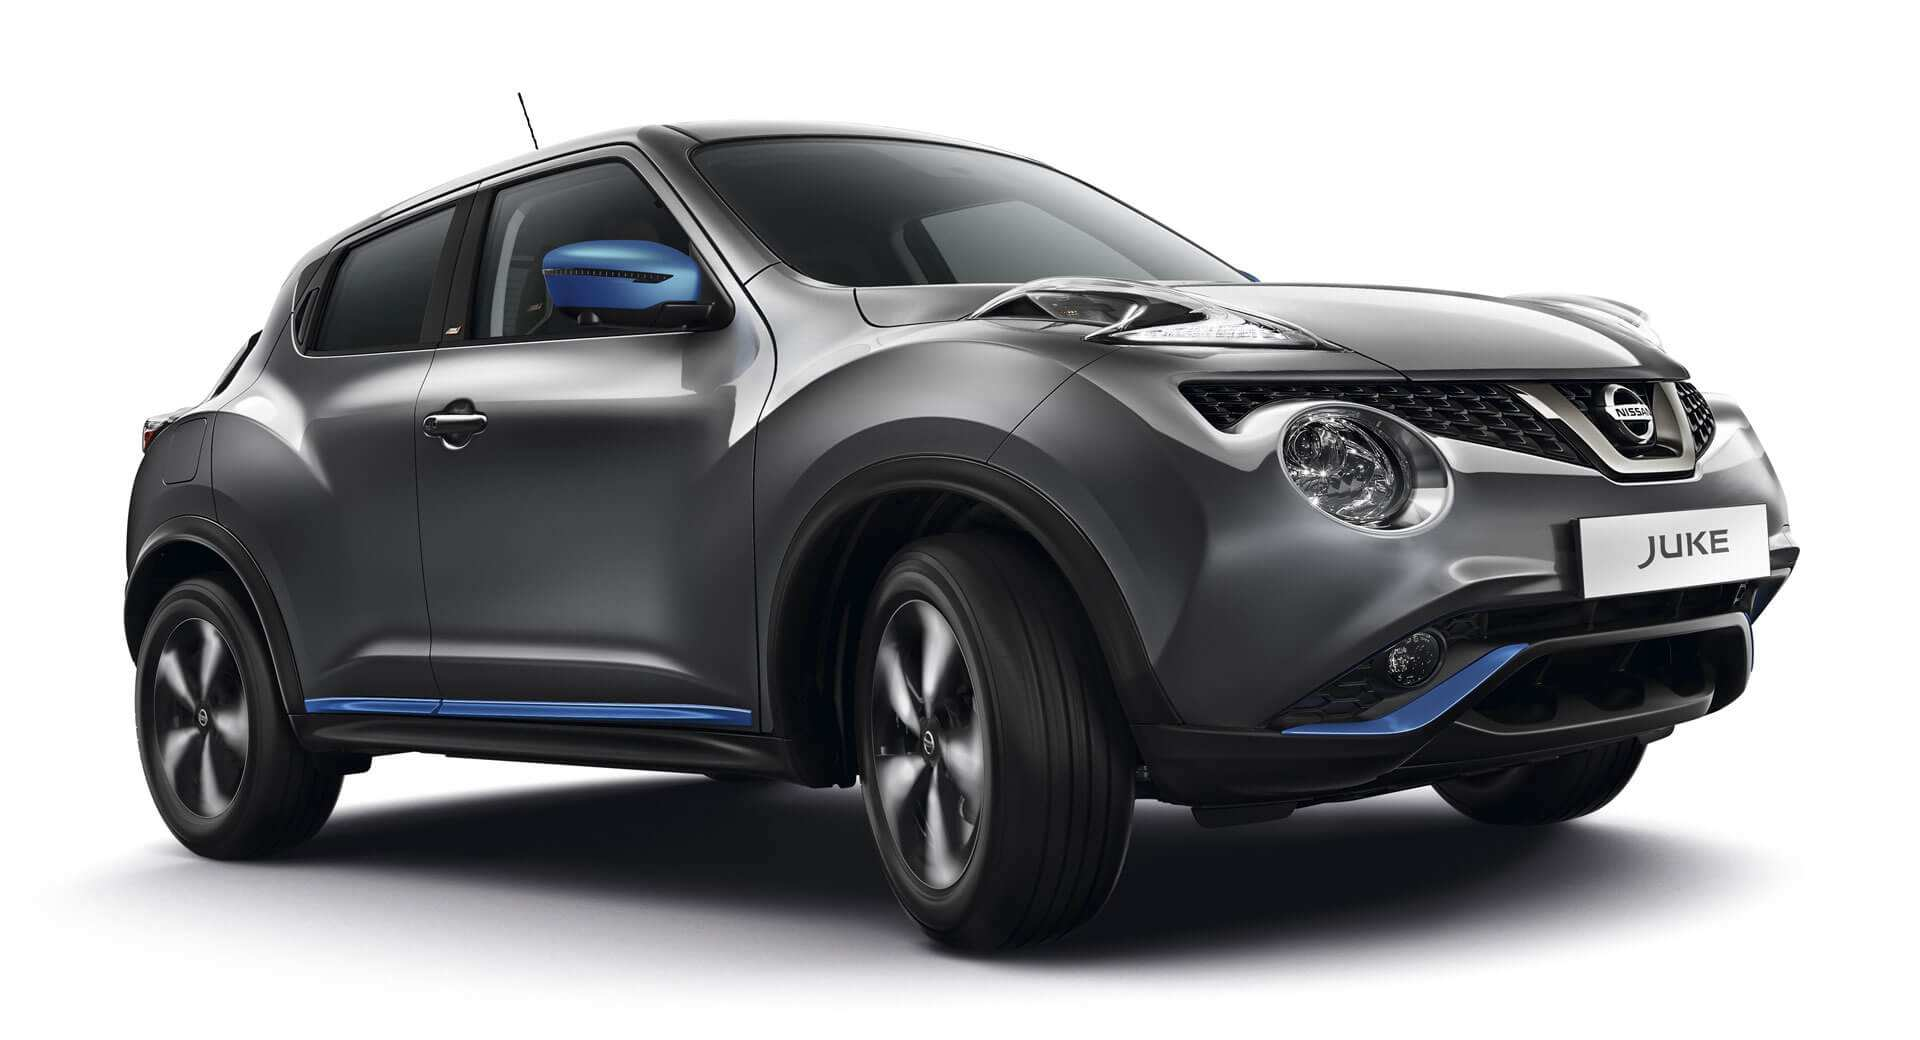 77 All New Juke Nissan 2019 Images